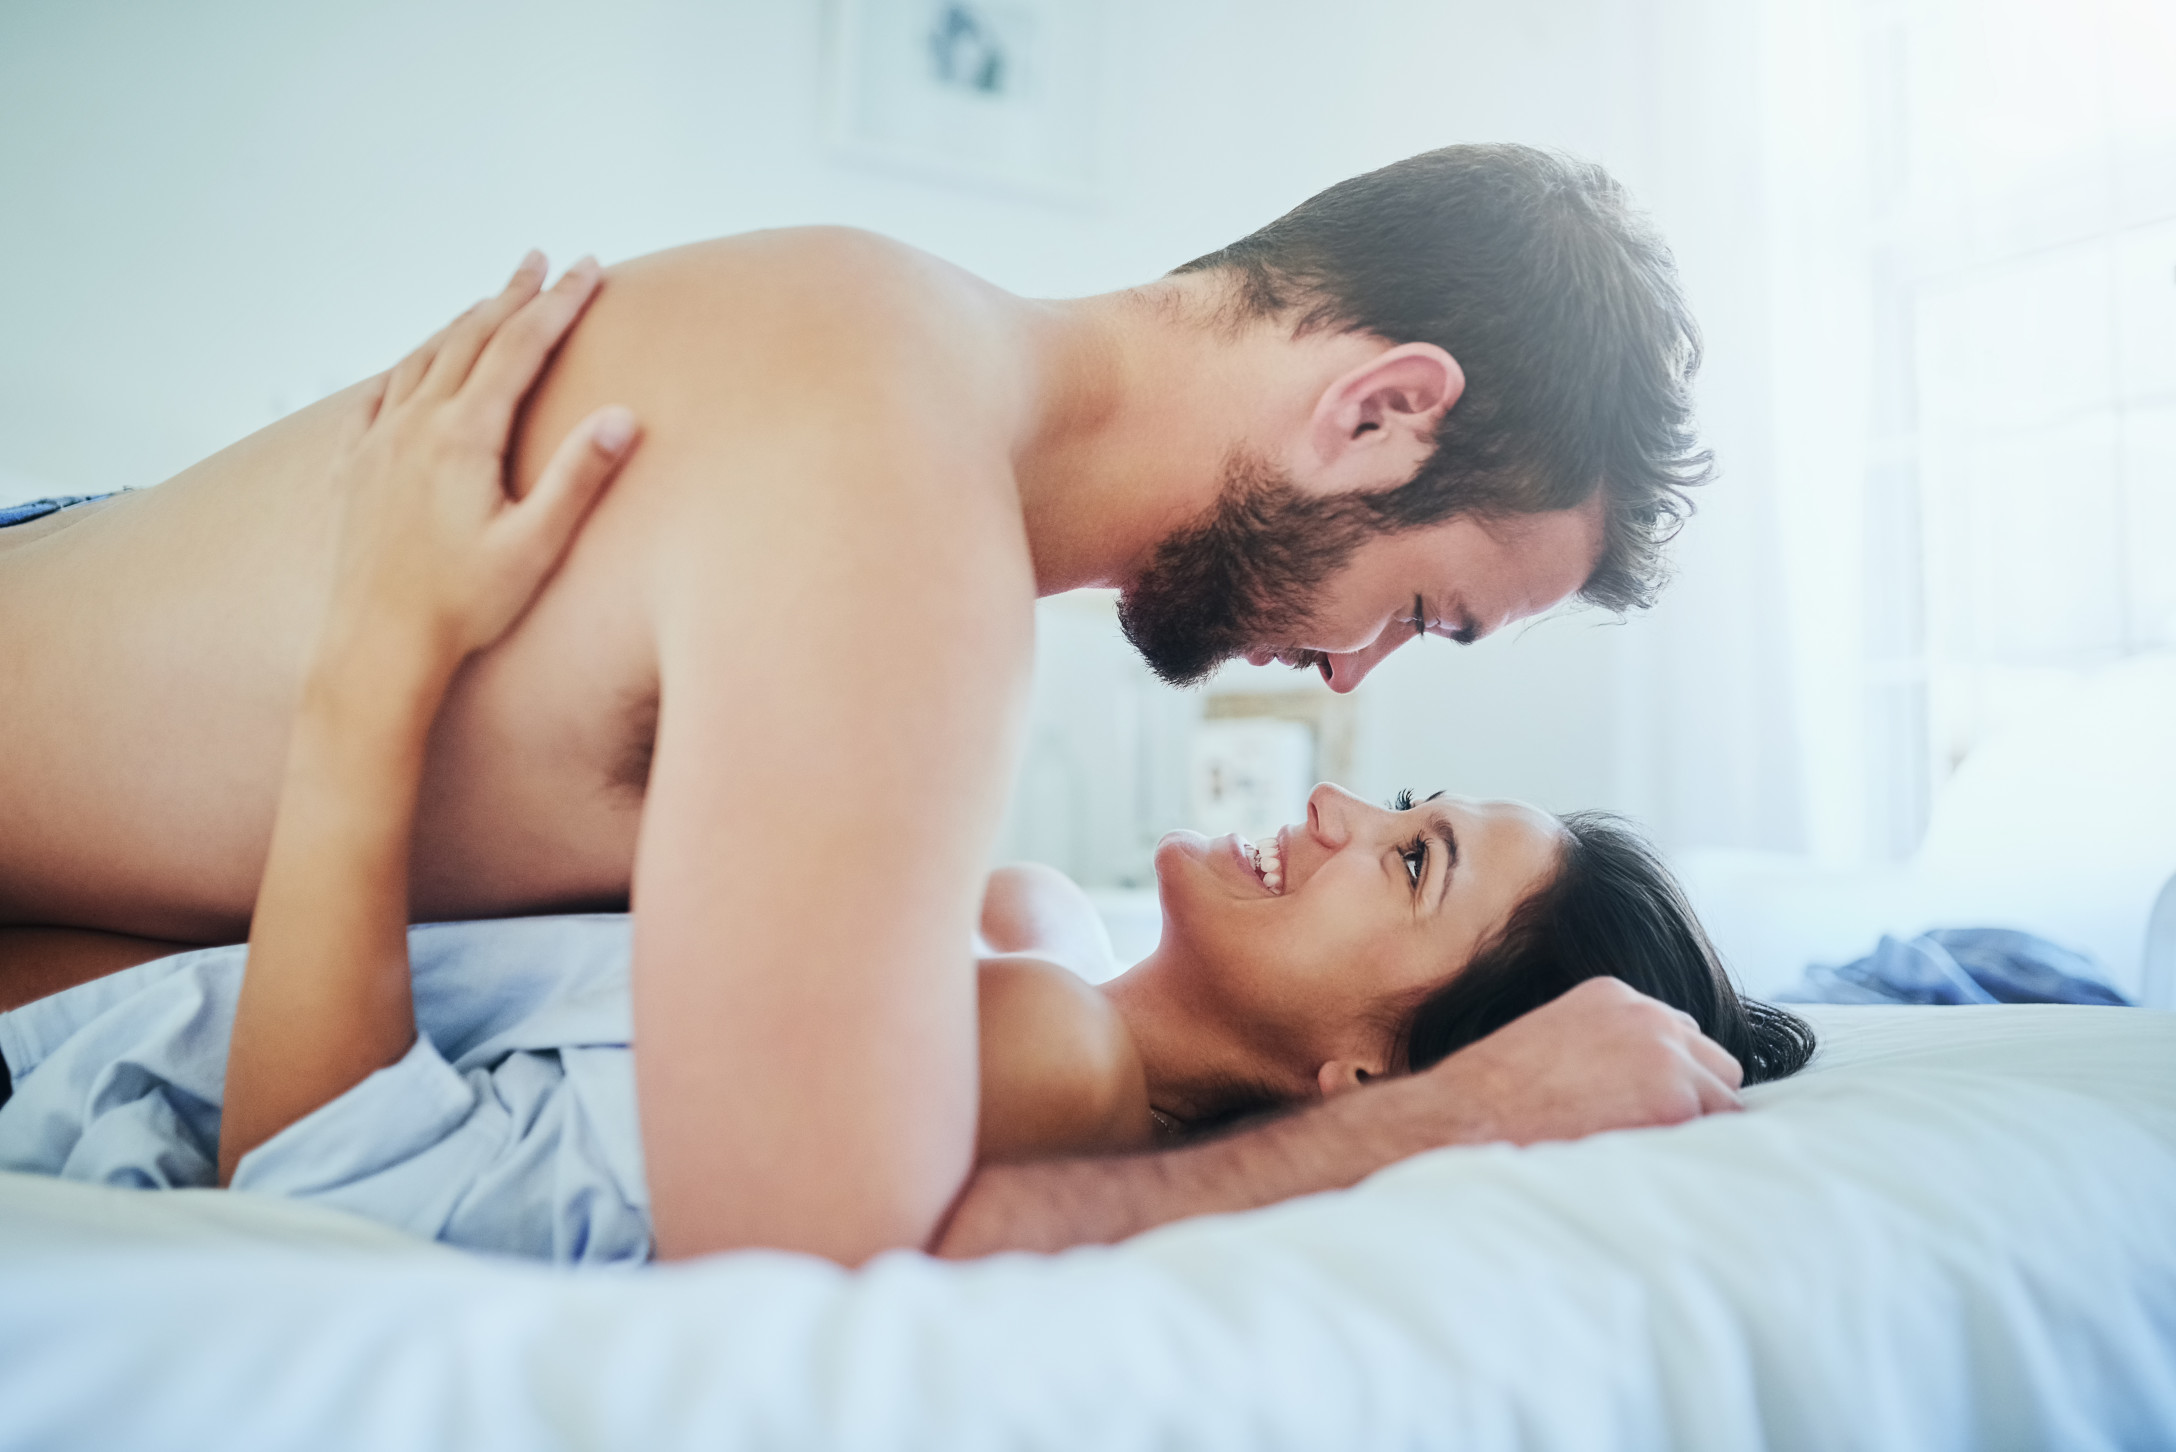 15 Reasons to Consider Trying 'Butt Stuff' in Bed (Yes, Seriously)